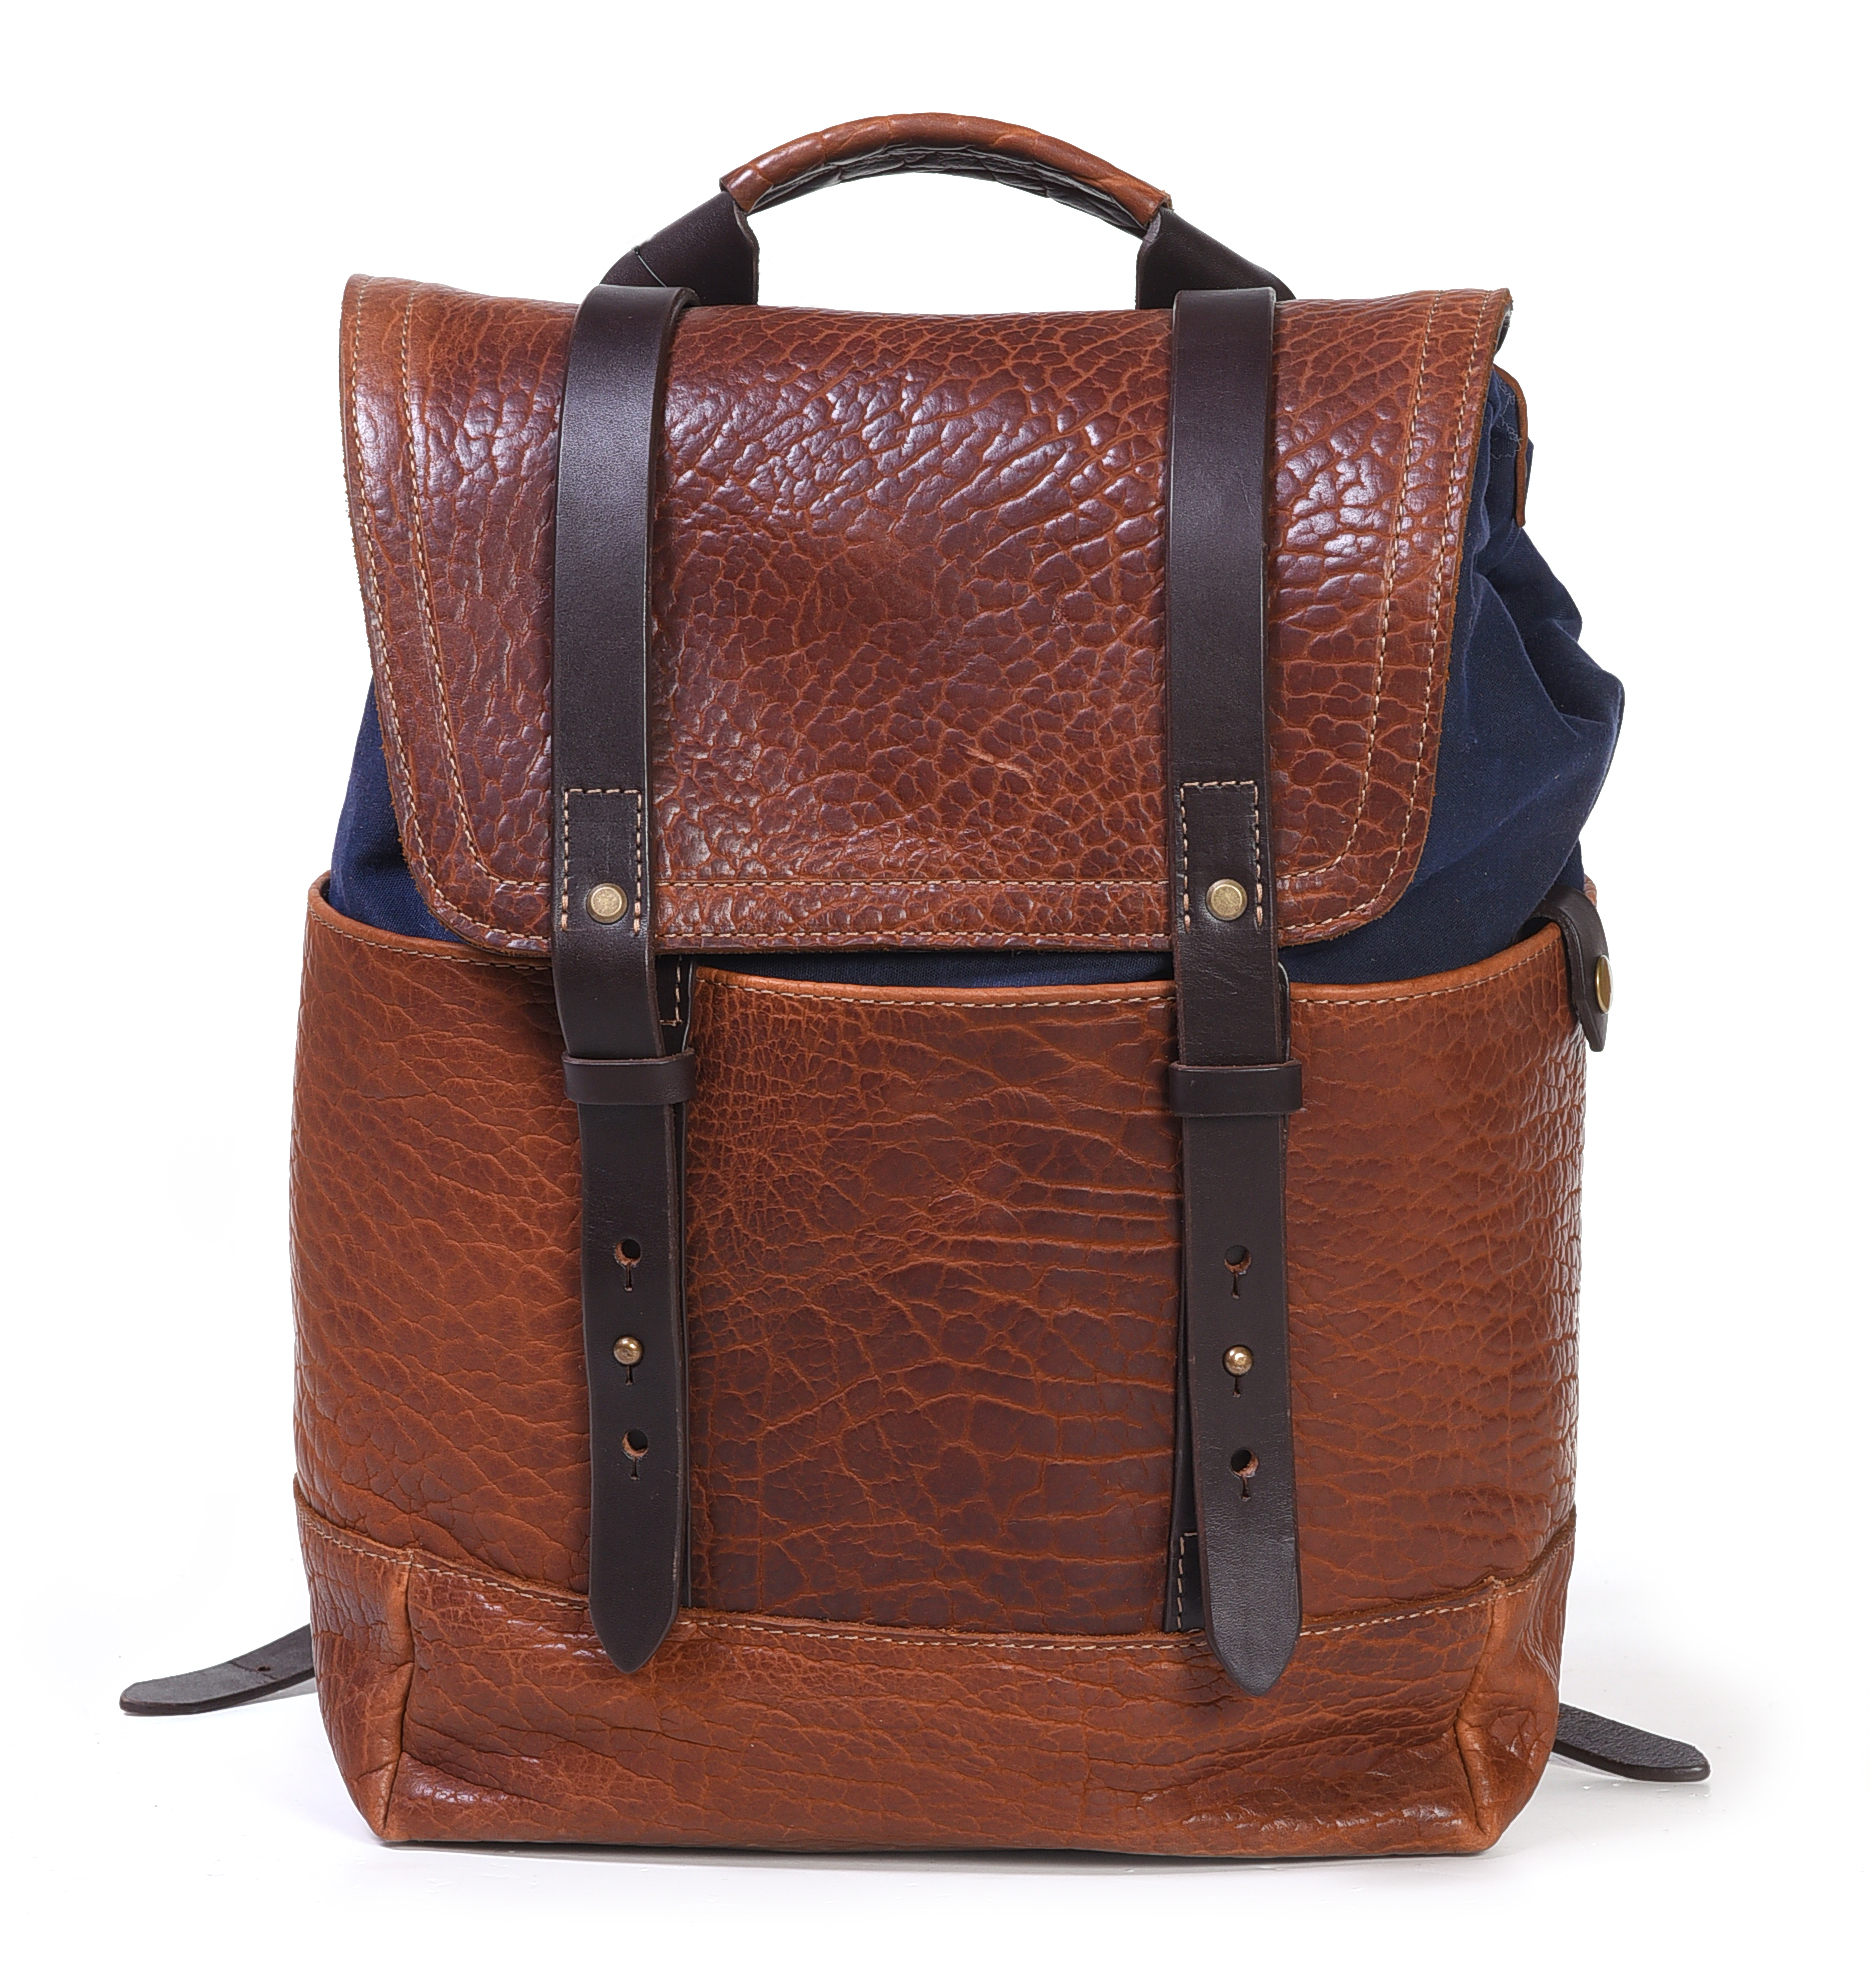 Coronado Leather Co. Bison Redwood Backpack